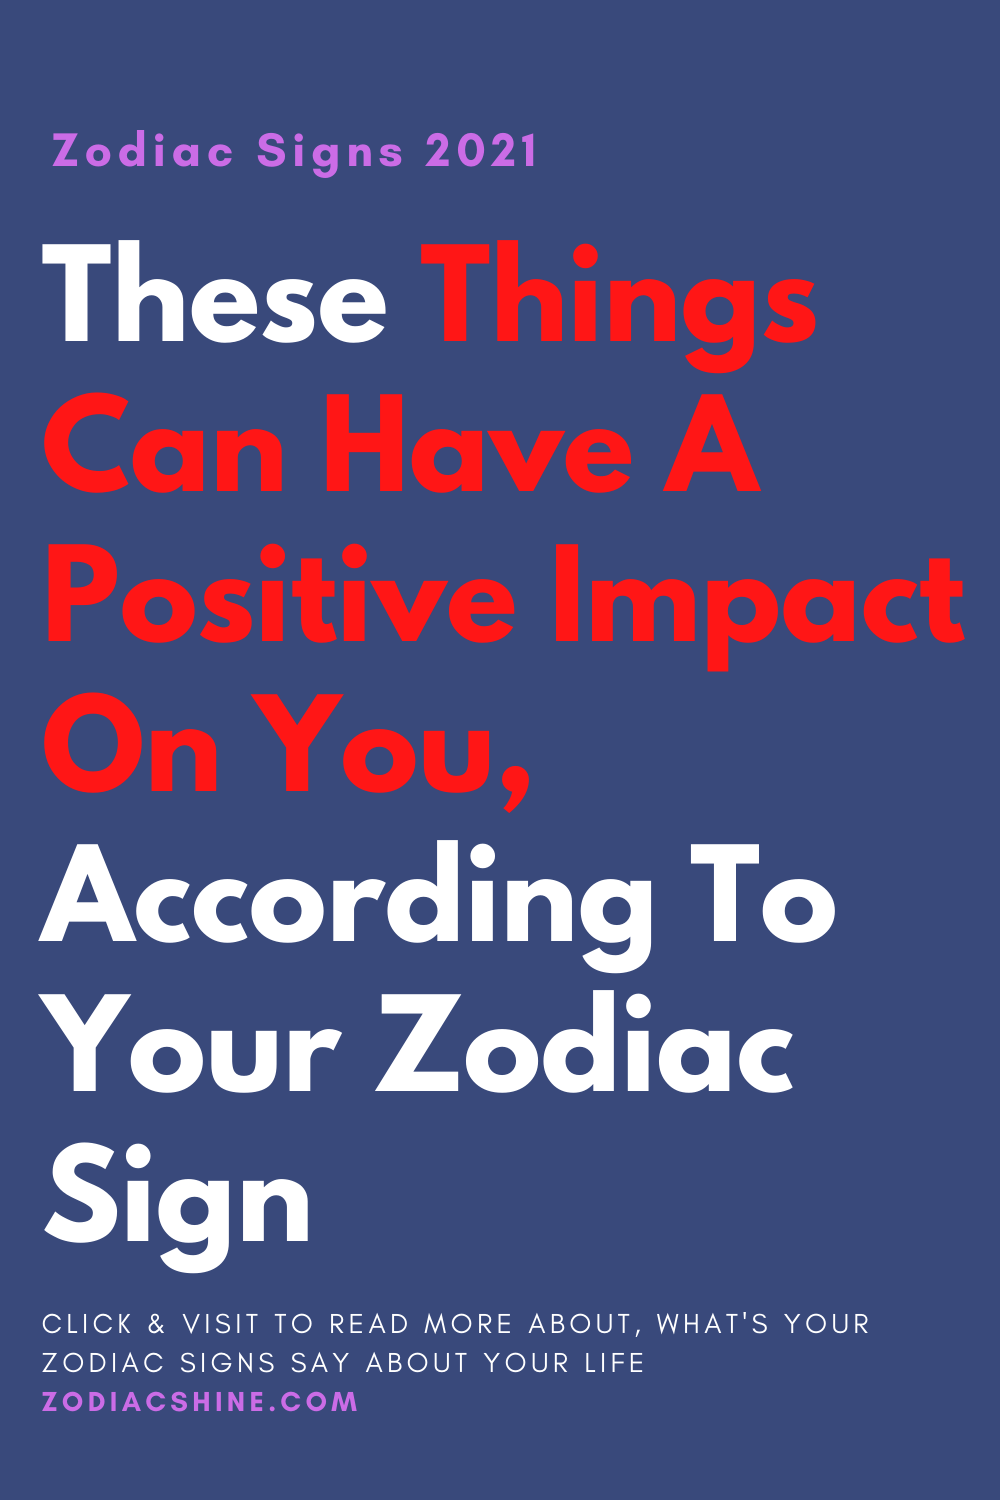 These things can have a positive impact on you, according to your zodiac sign